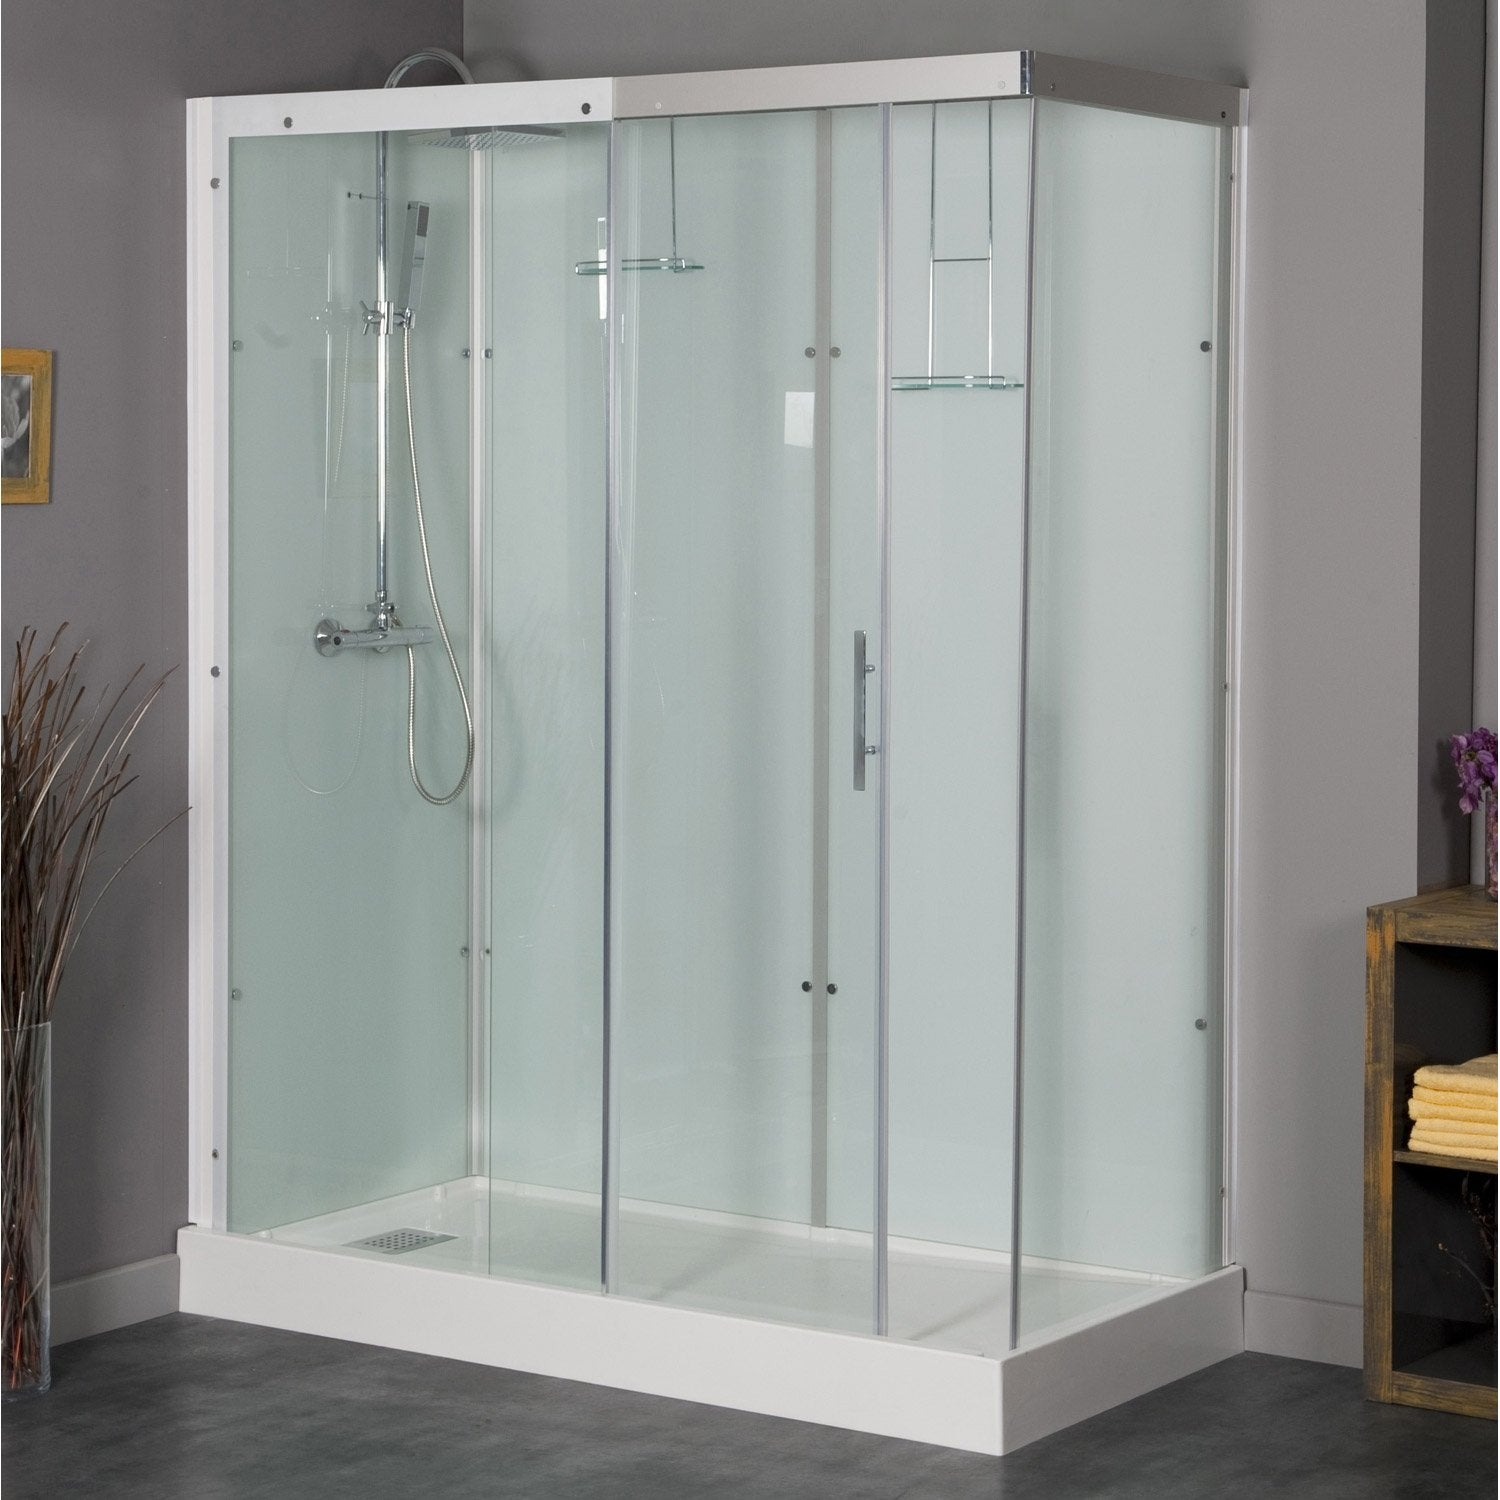 Cabine de douche rectangulaire 120x90 cm thalaglass 2 for Prix douche italienne leroy merlin